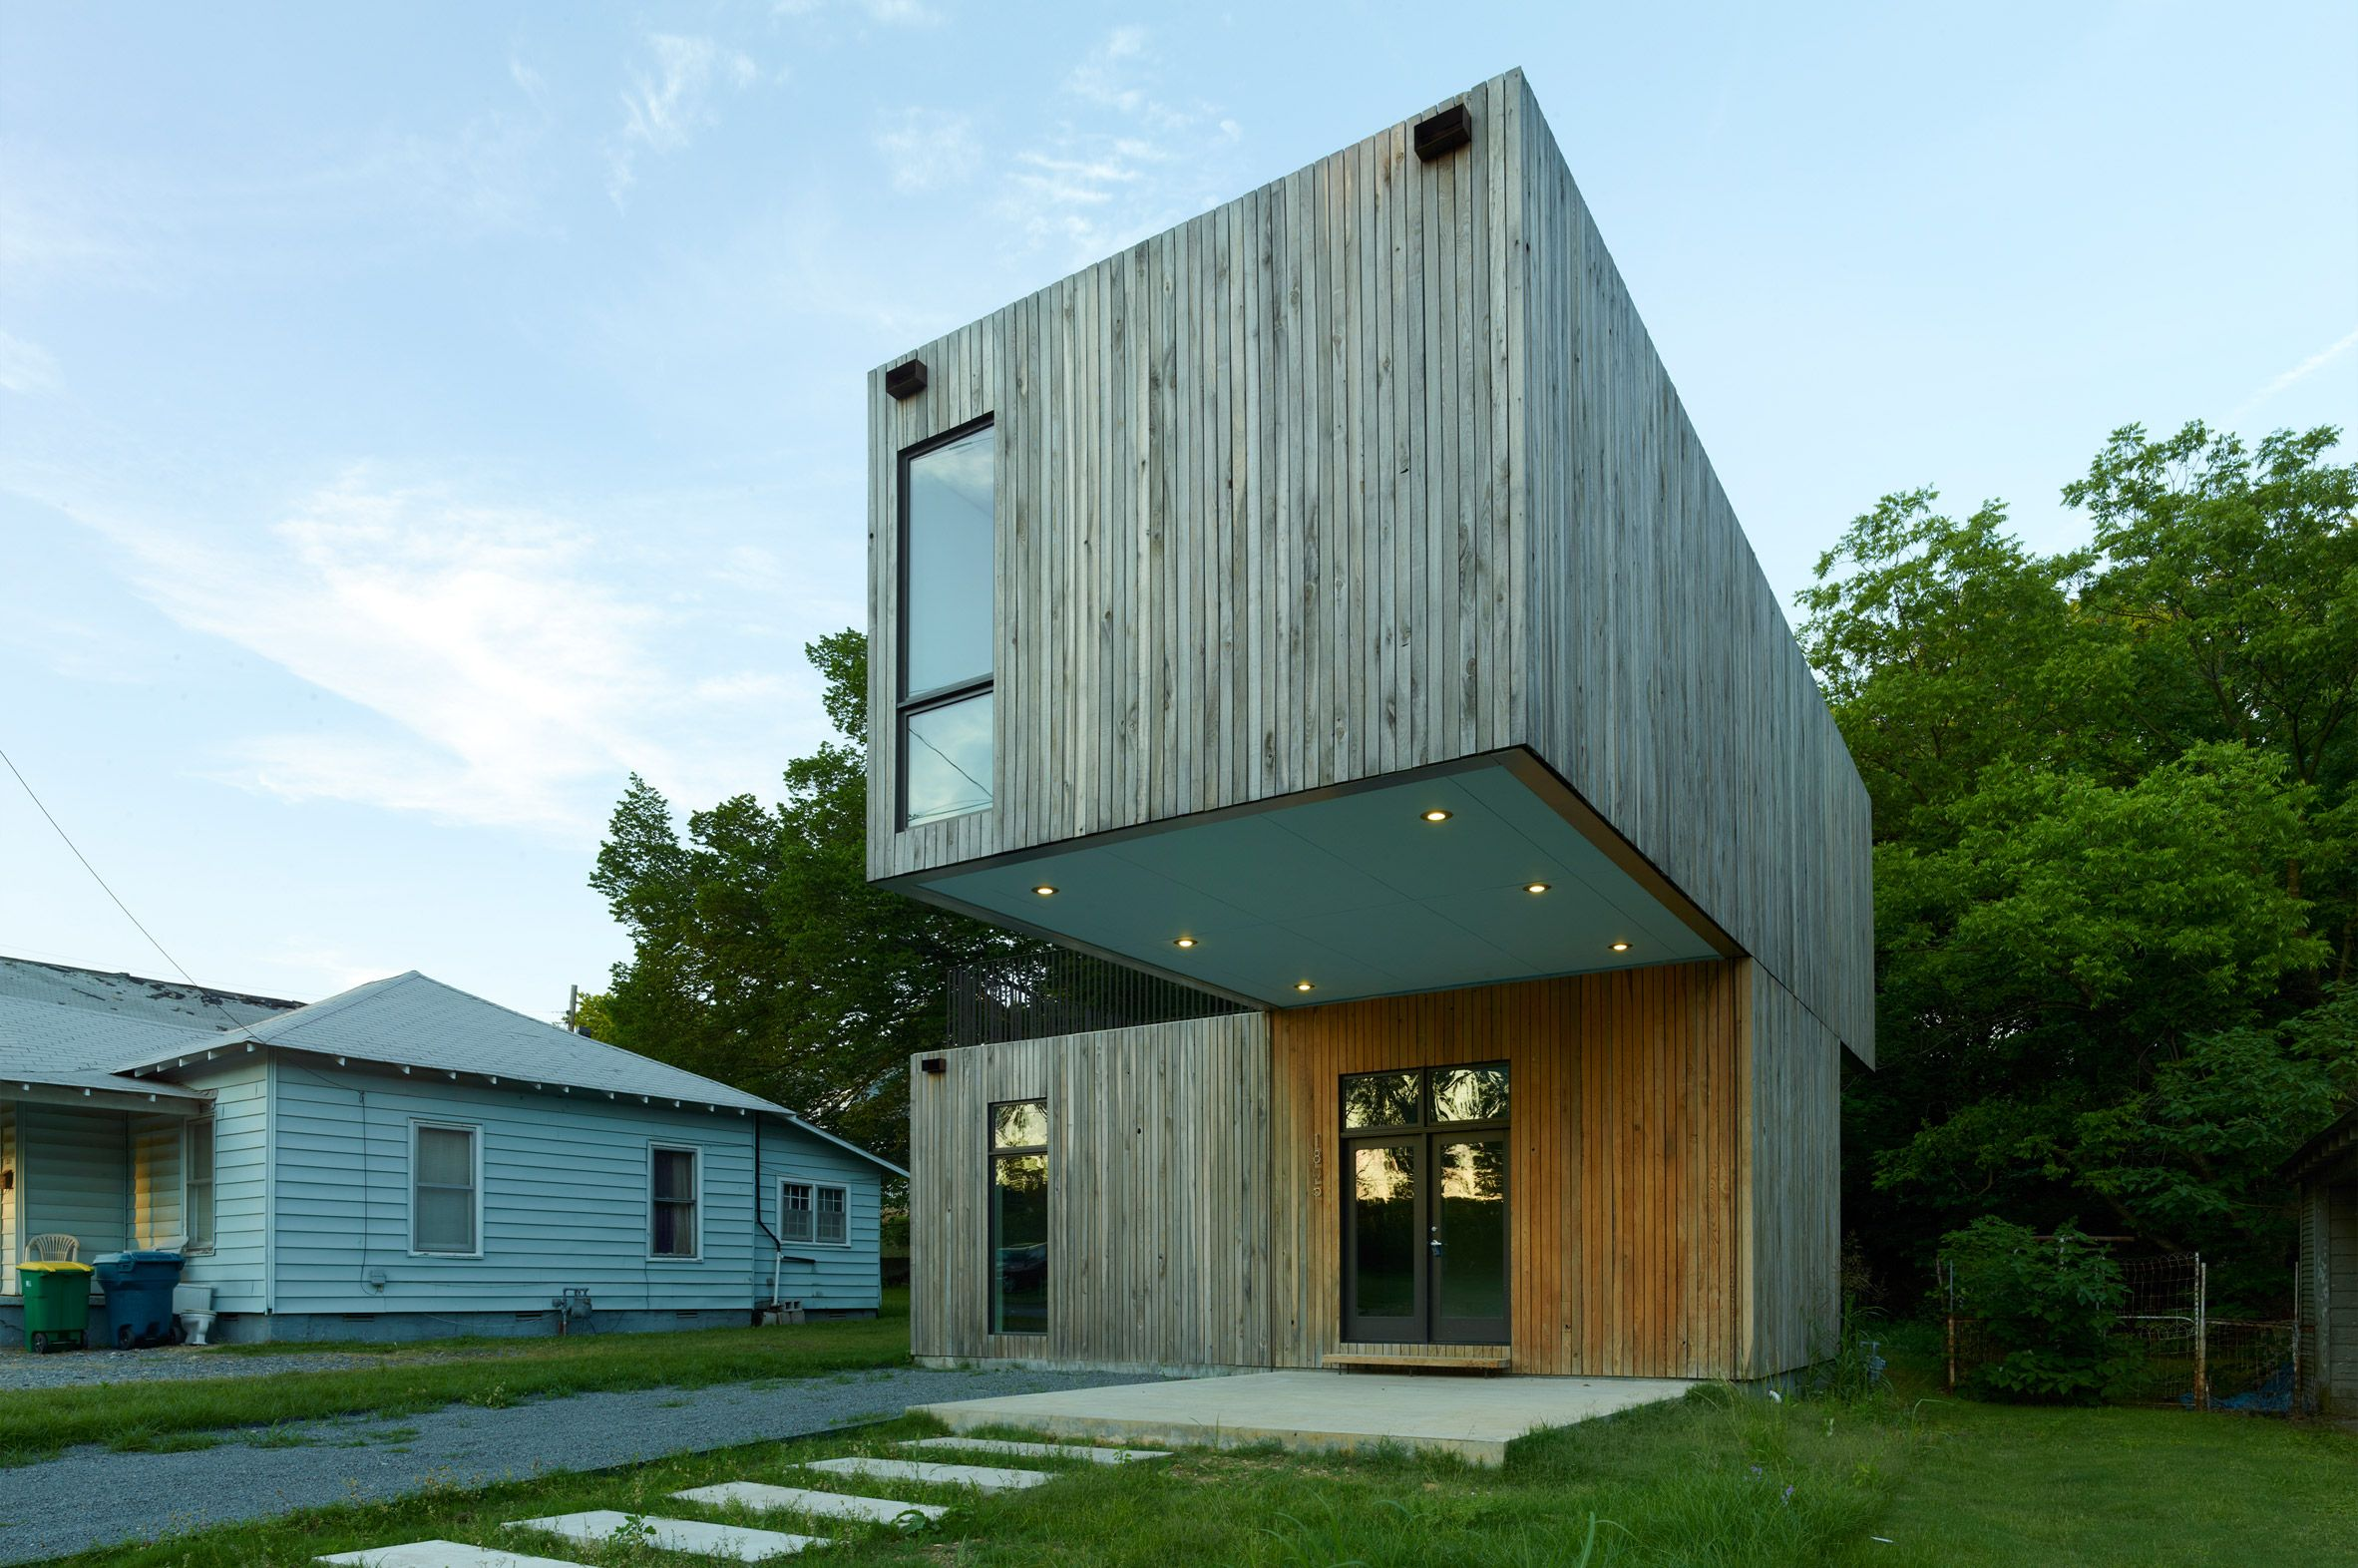 Adam architecture groundbreaking country house in hampshire - Cantilever House By Fay Jones School Of Architecture And Design